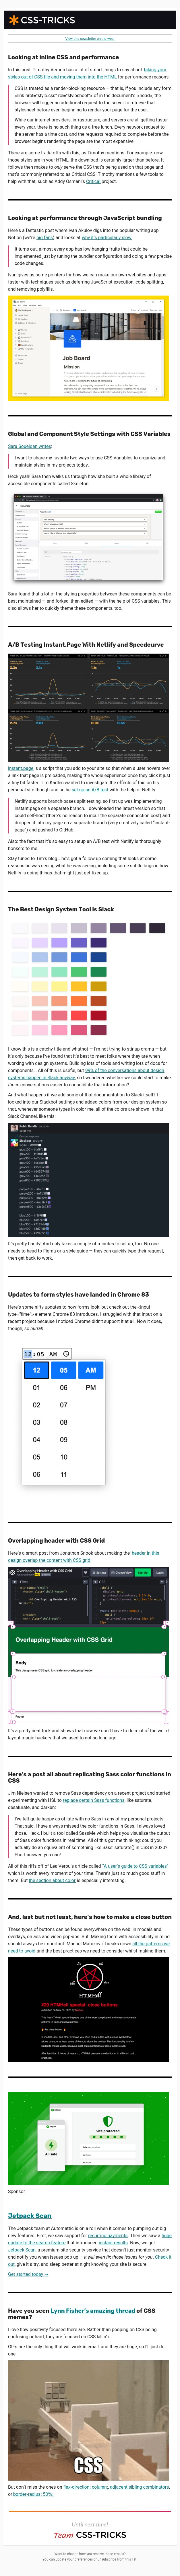 📝 [CSS-Tricks] 202: How to Improve Site Performance & Tricks for Using CSS variables